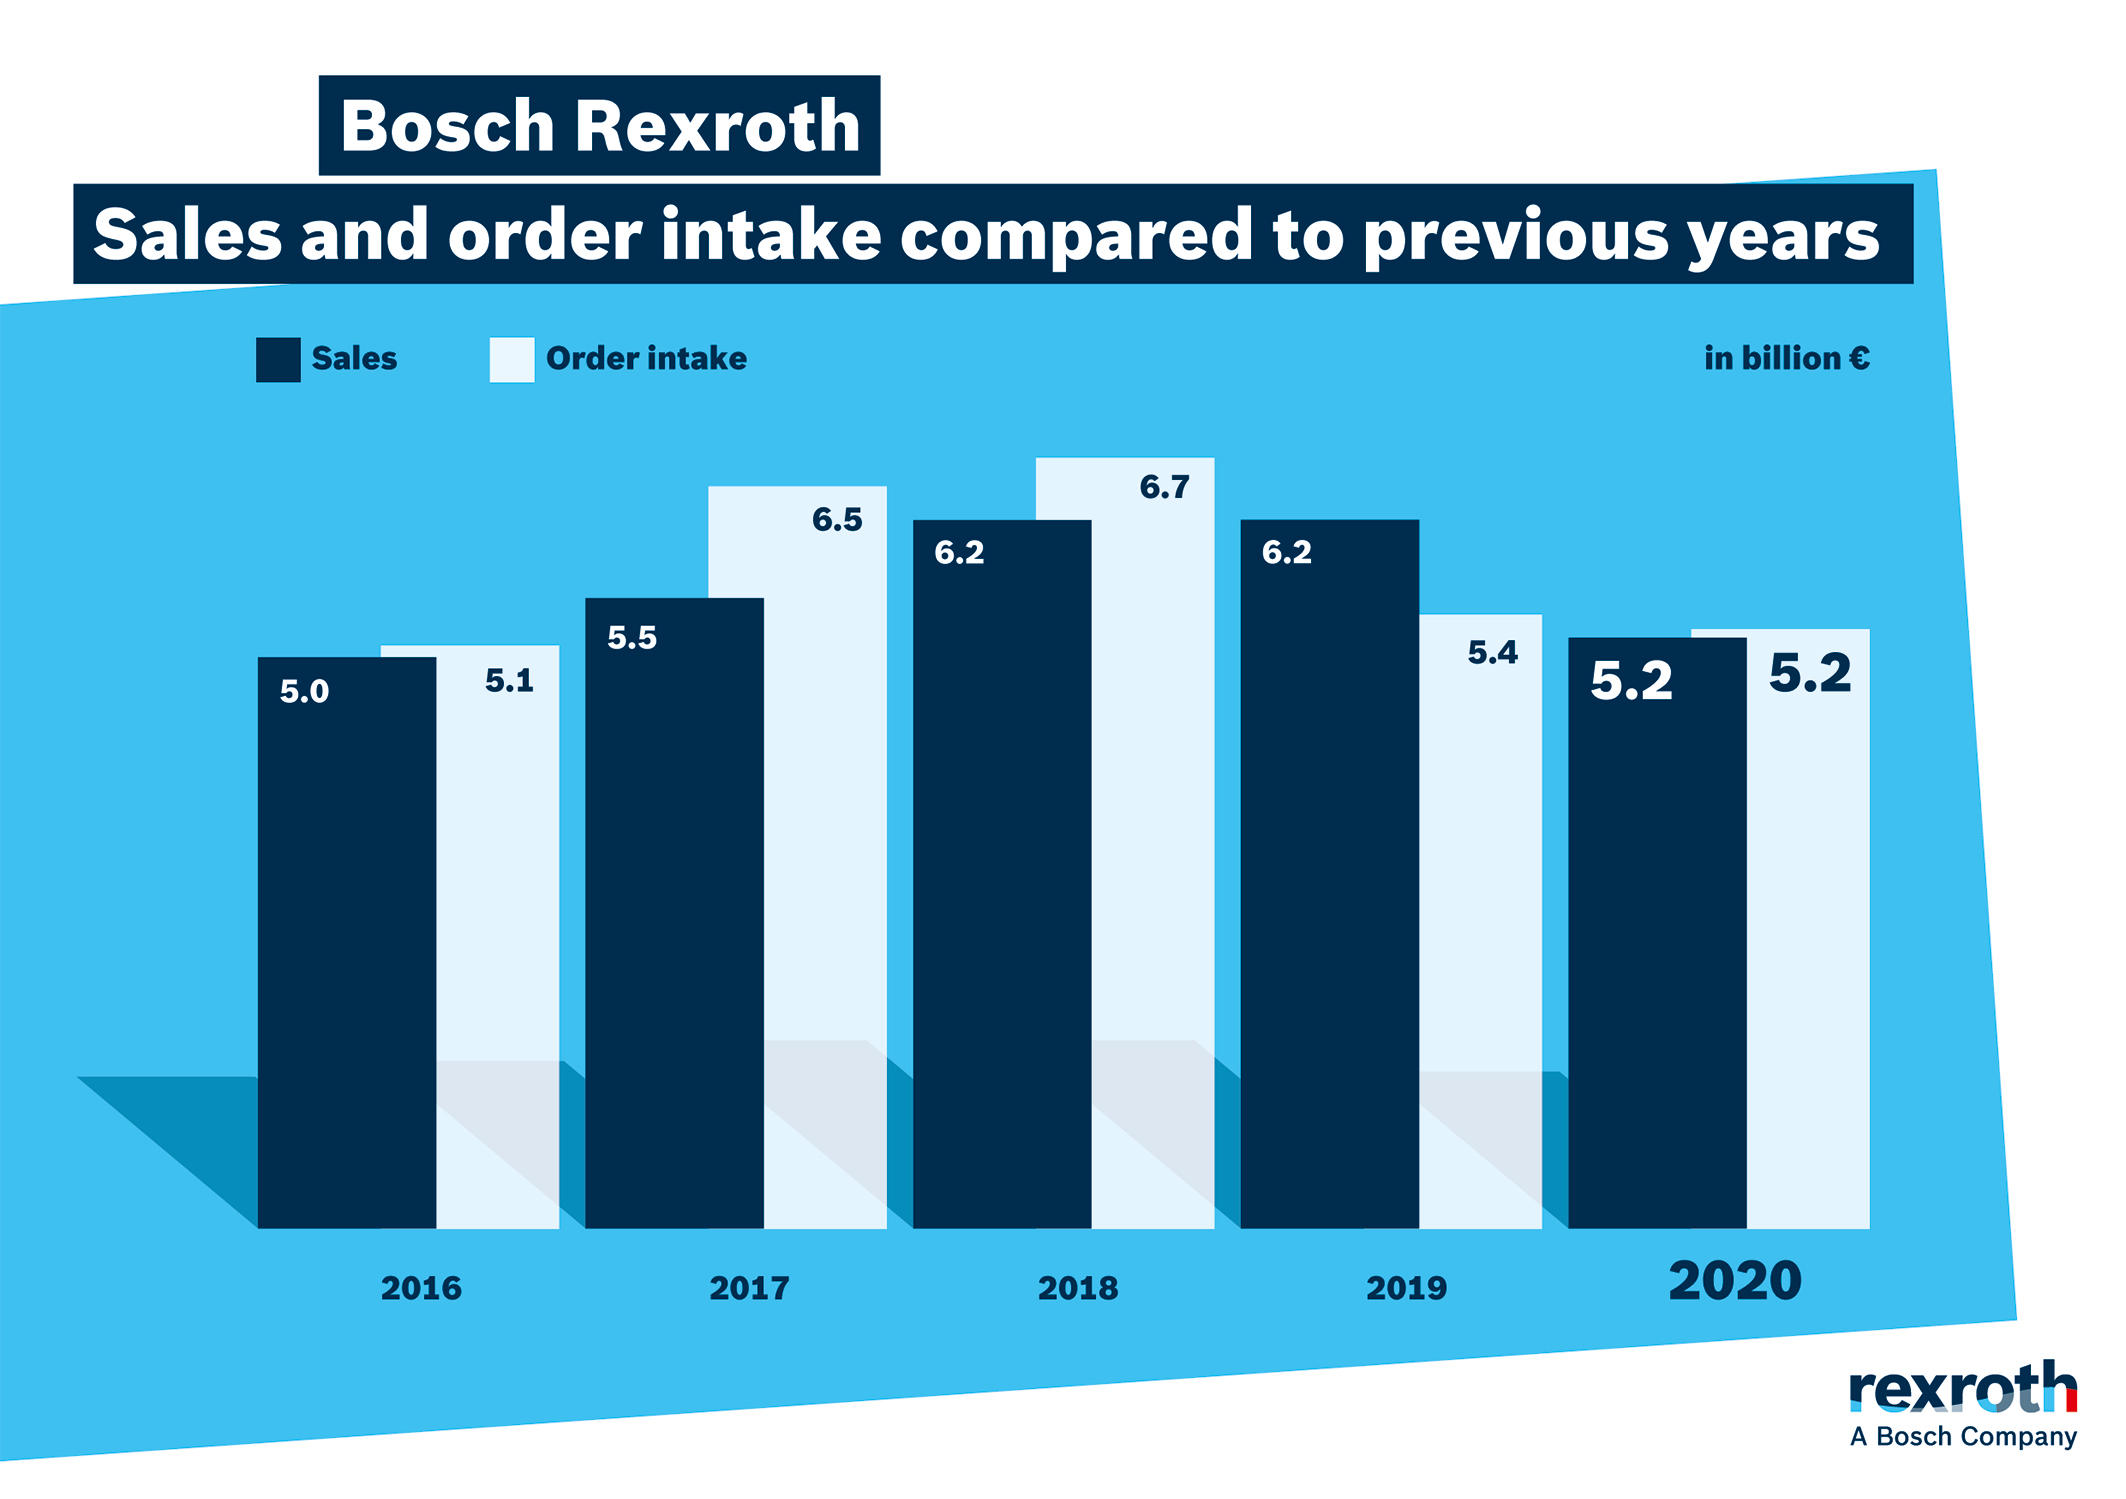 Sales and order intake compared to previous years